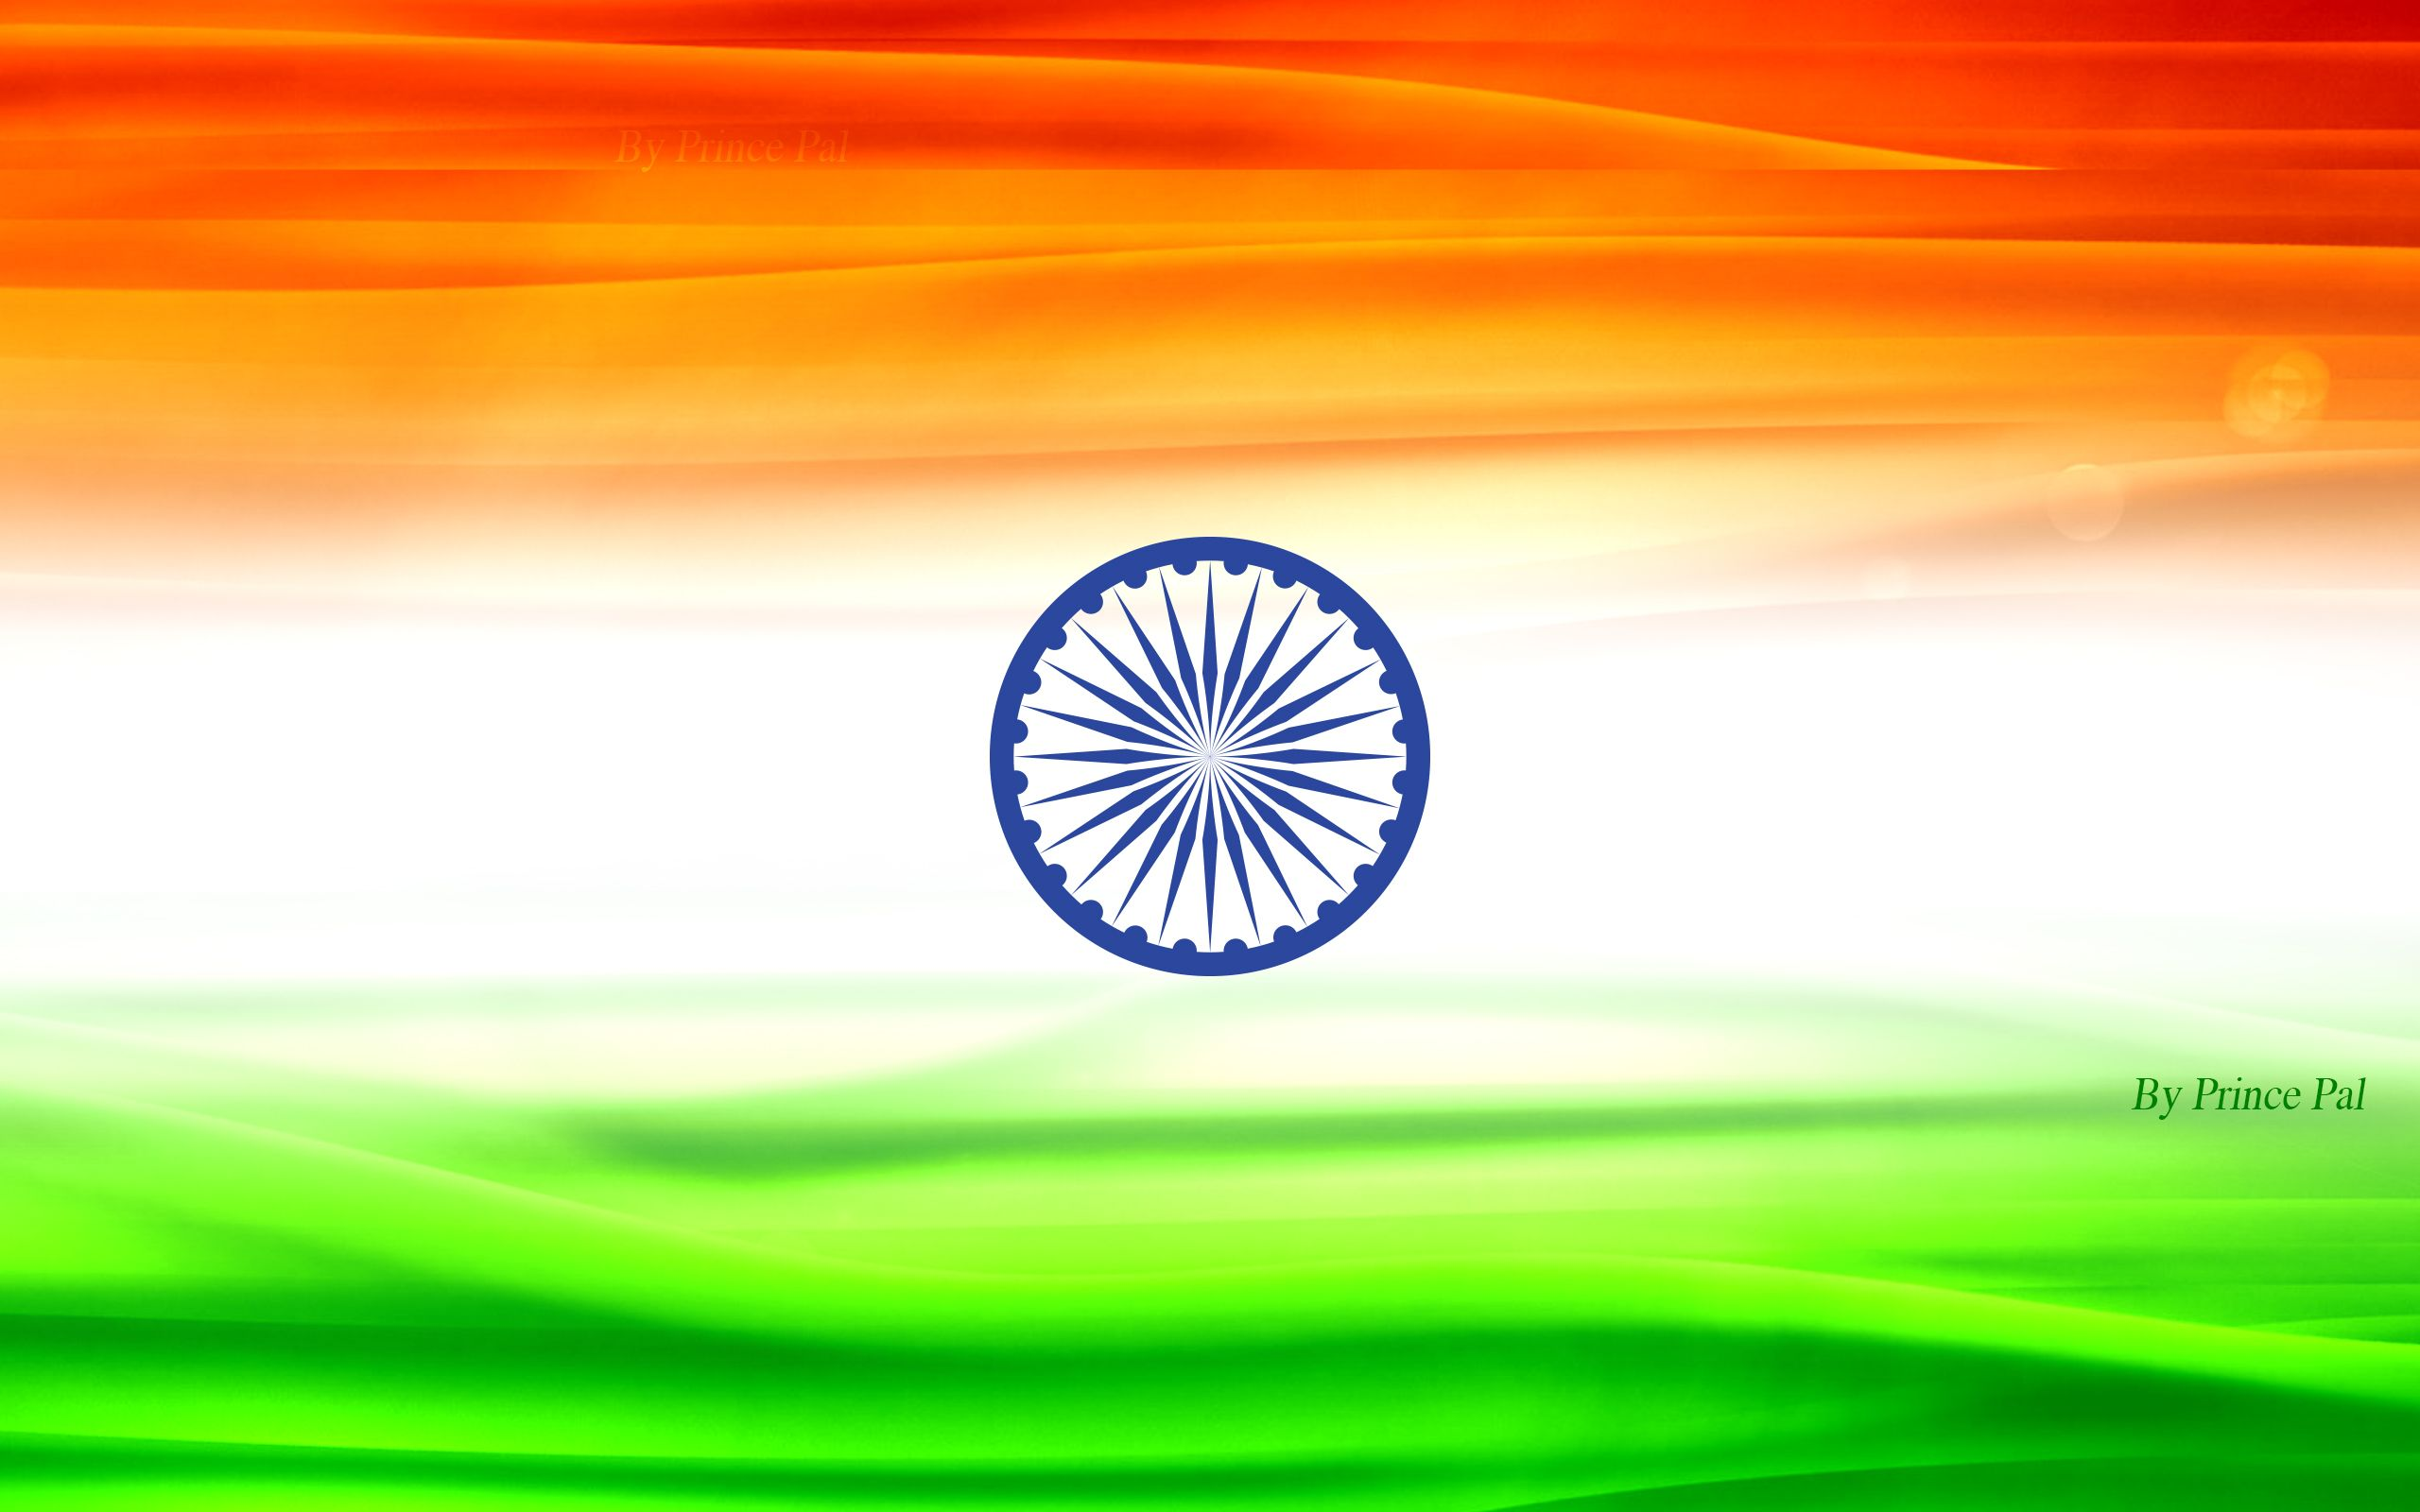 Indian Flag 4k Wallpaper: Indian-Flag-Wallpapers-for Desktop